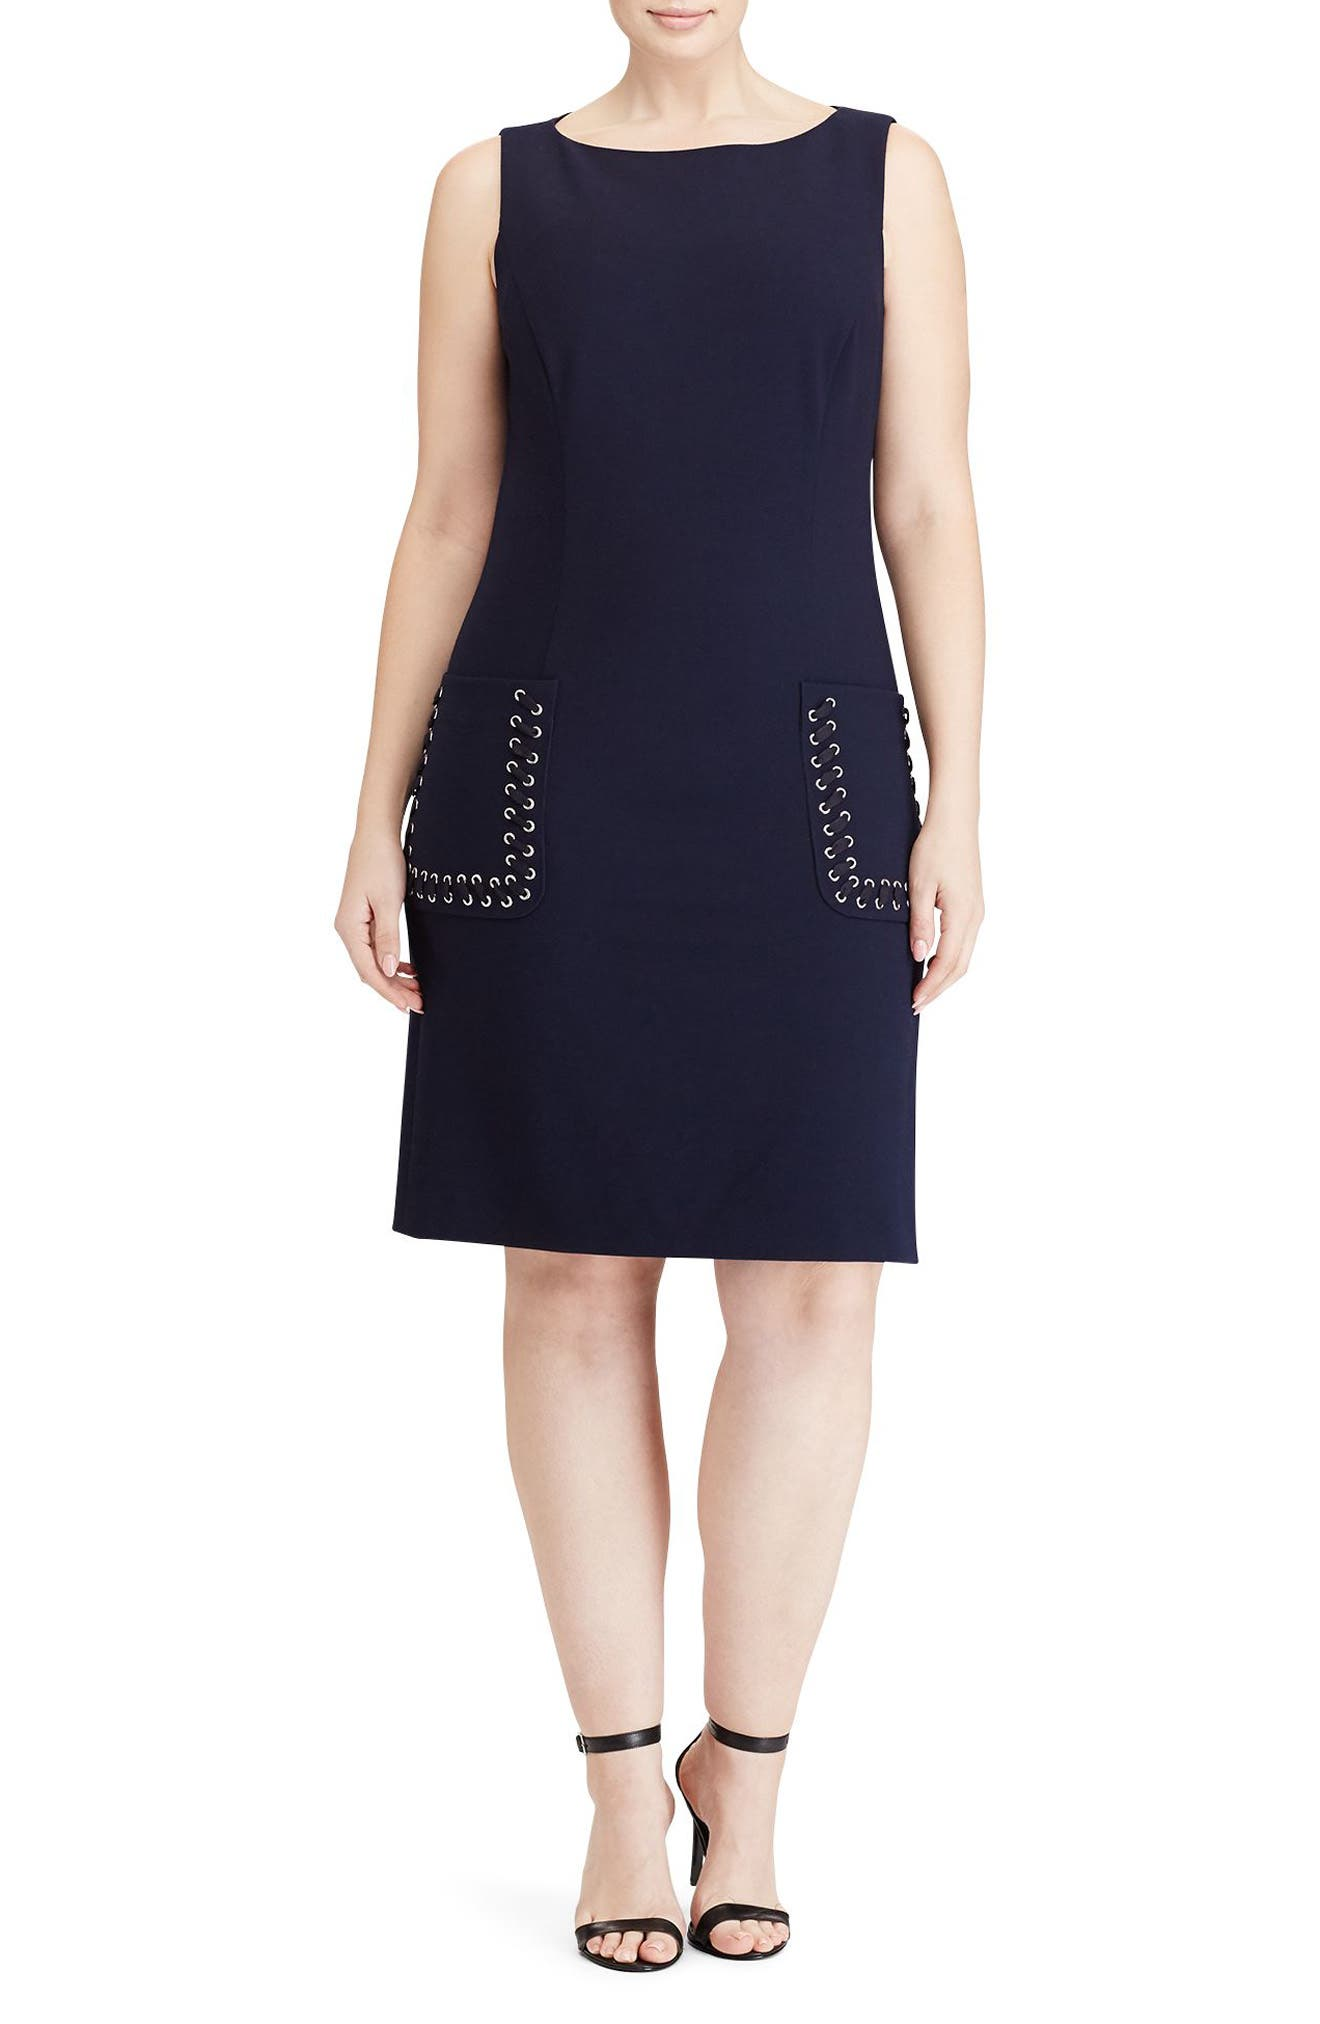 Lauren Ralph Lauren Nance A-Line Dress (Plus Size)